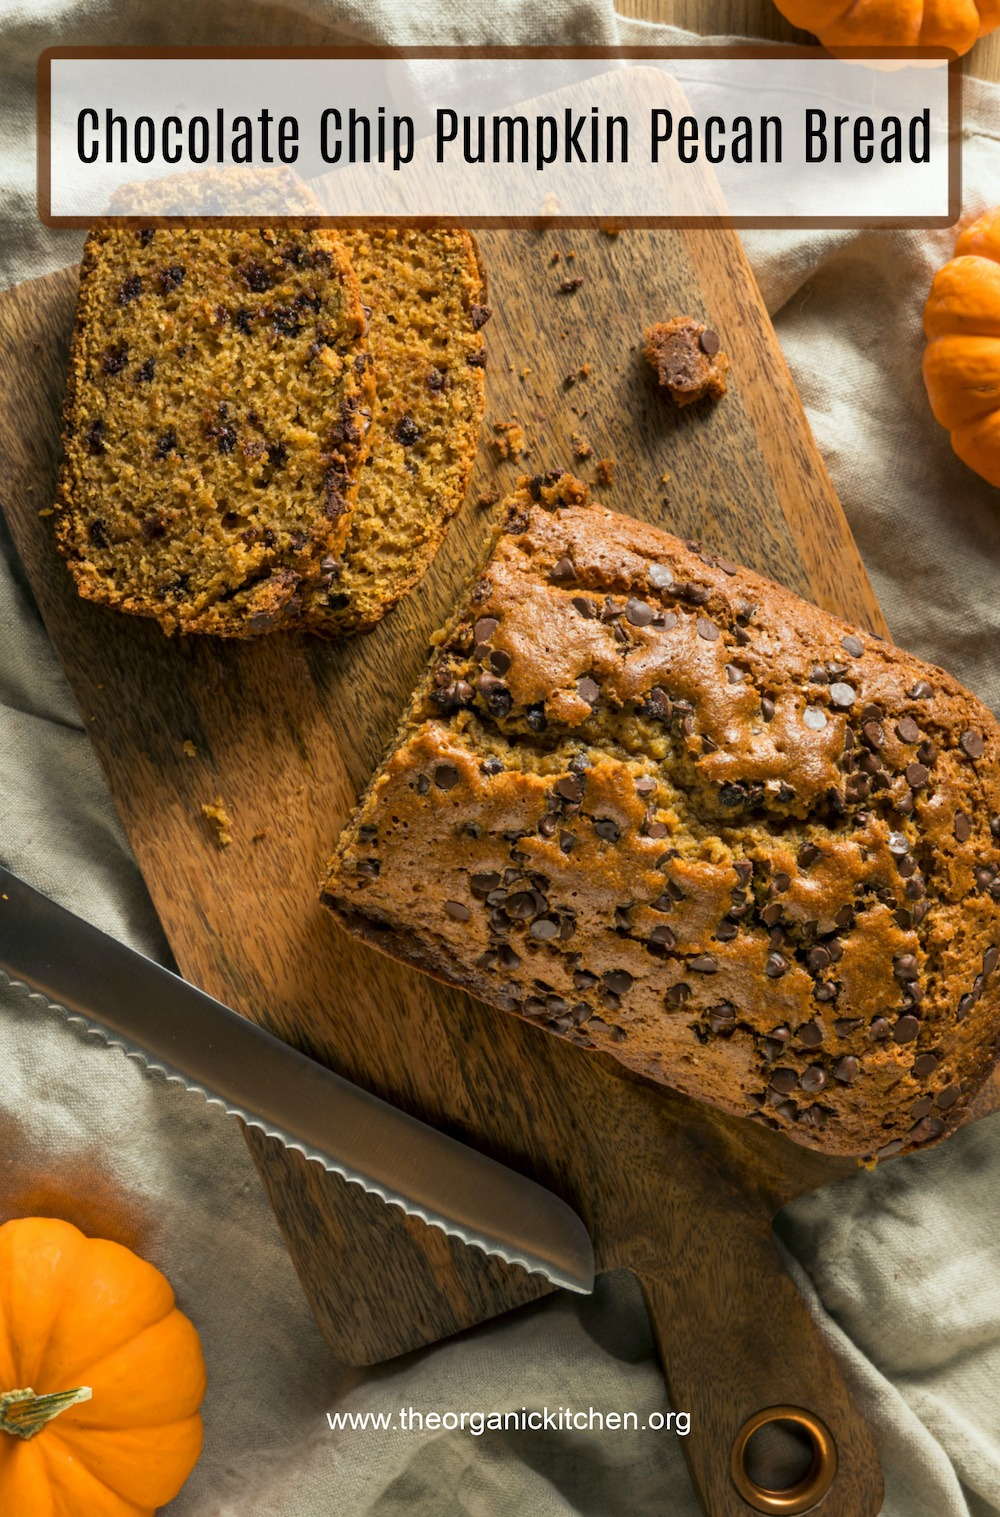 Chocolate Chip Pumpkin Pecan Bread (gluten free option) on wood cutting board surrounded by small pumpkins